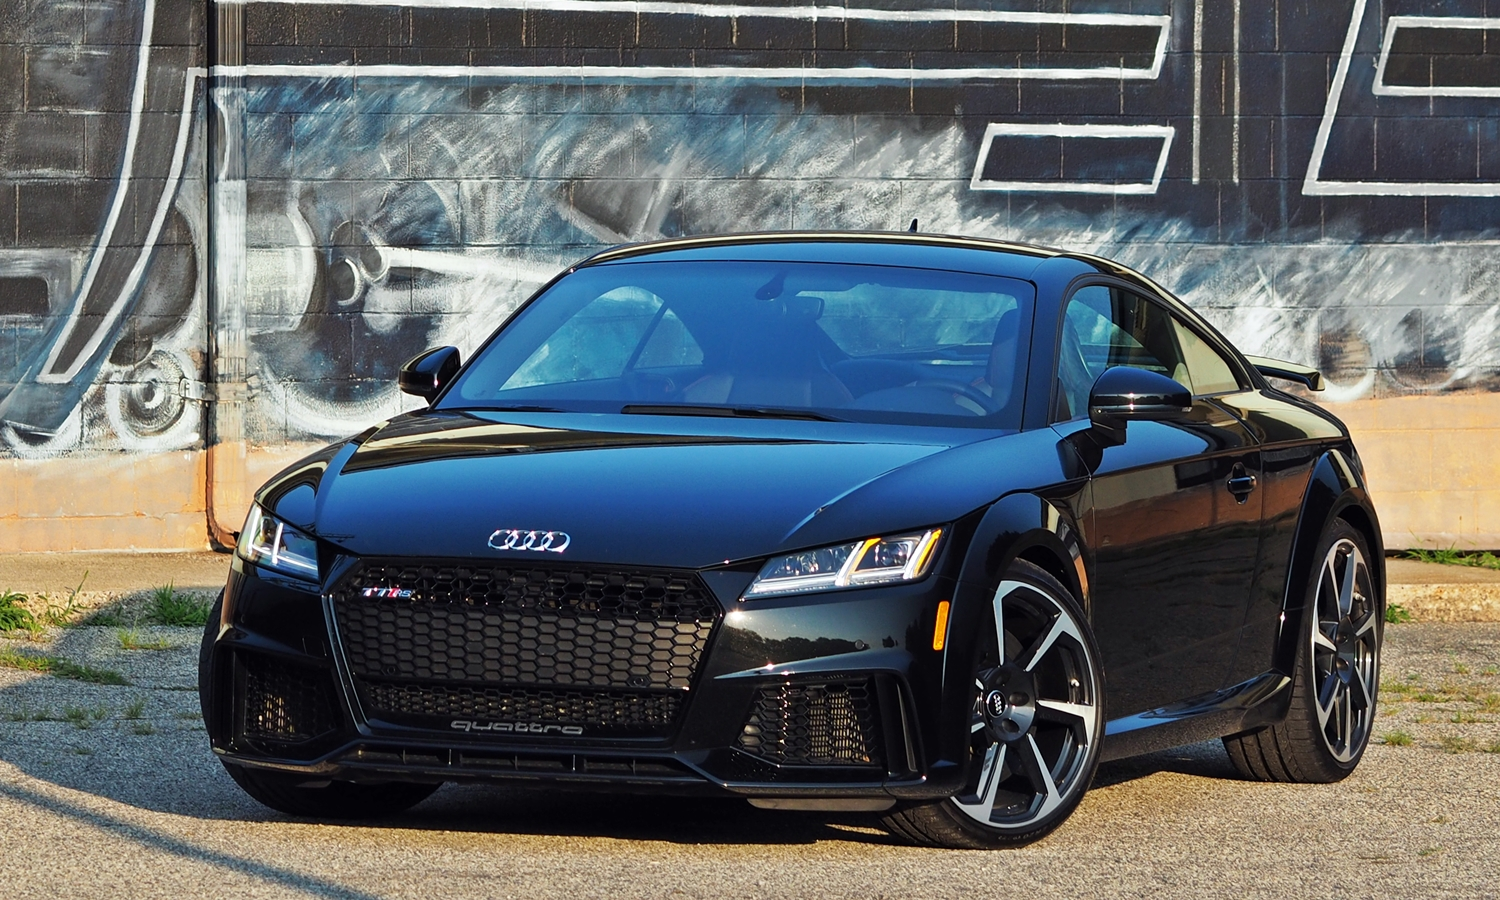 Audi TT Photos: Audi TT RS front angle view